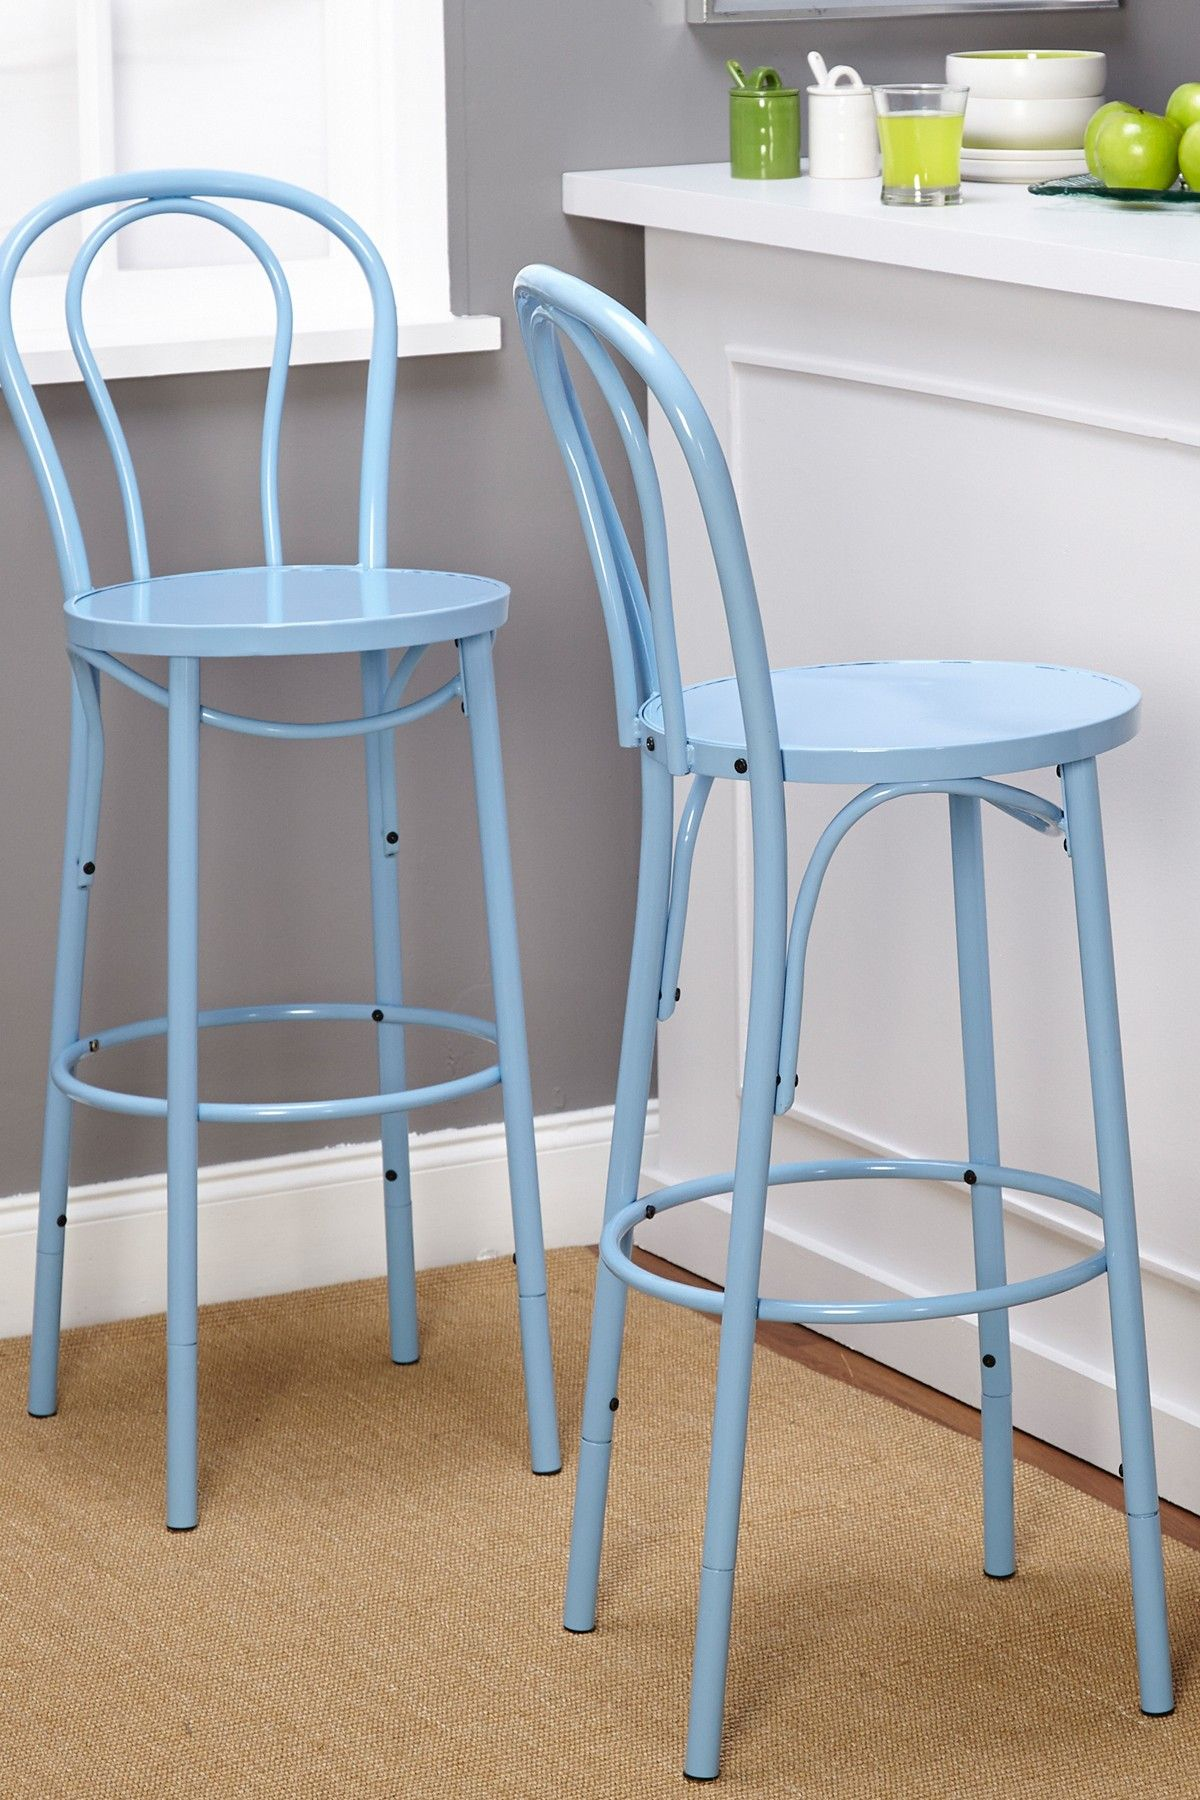 Blue Vintage Inspire Adjustable Height Barstool | Home | Pinterest ...